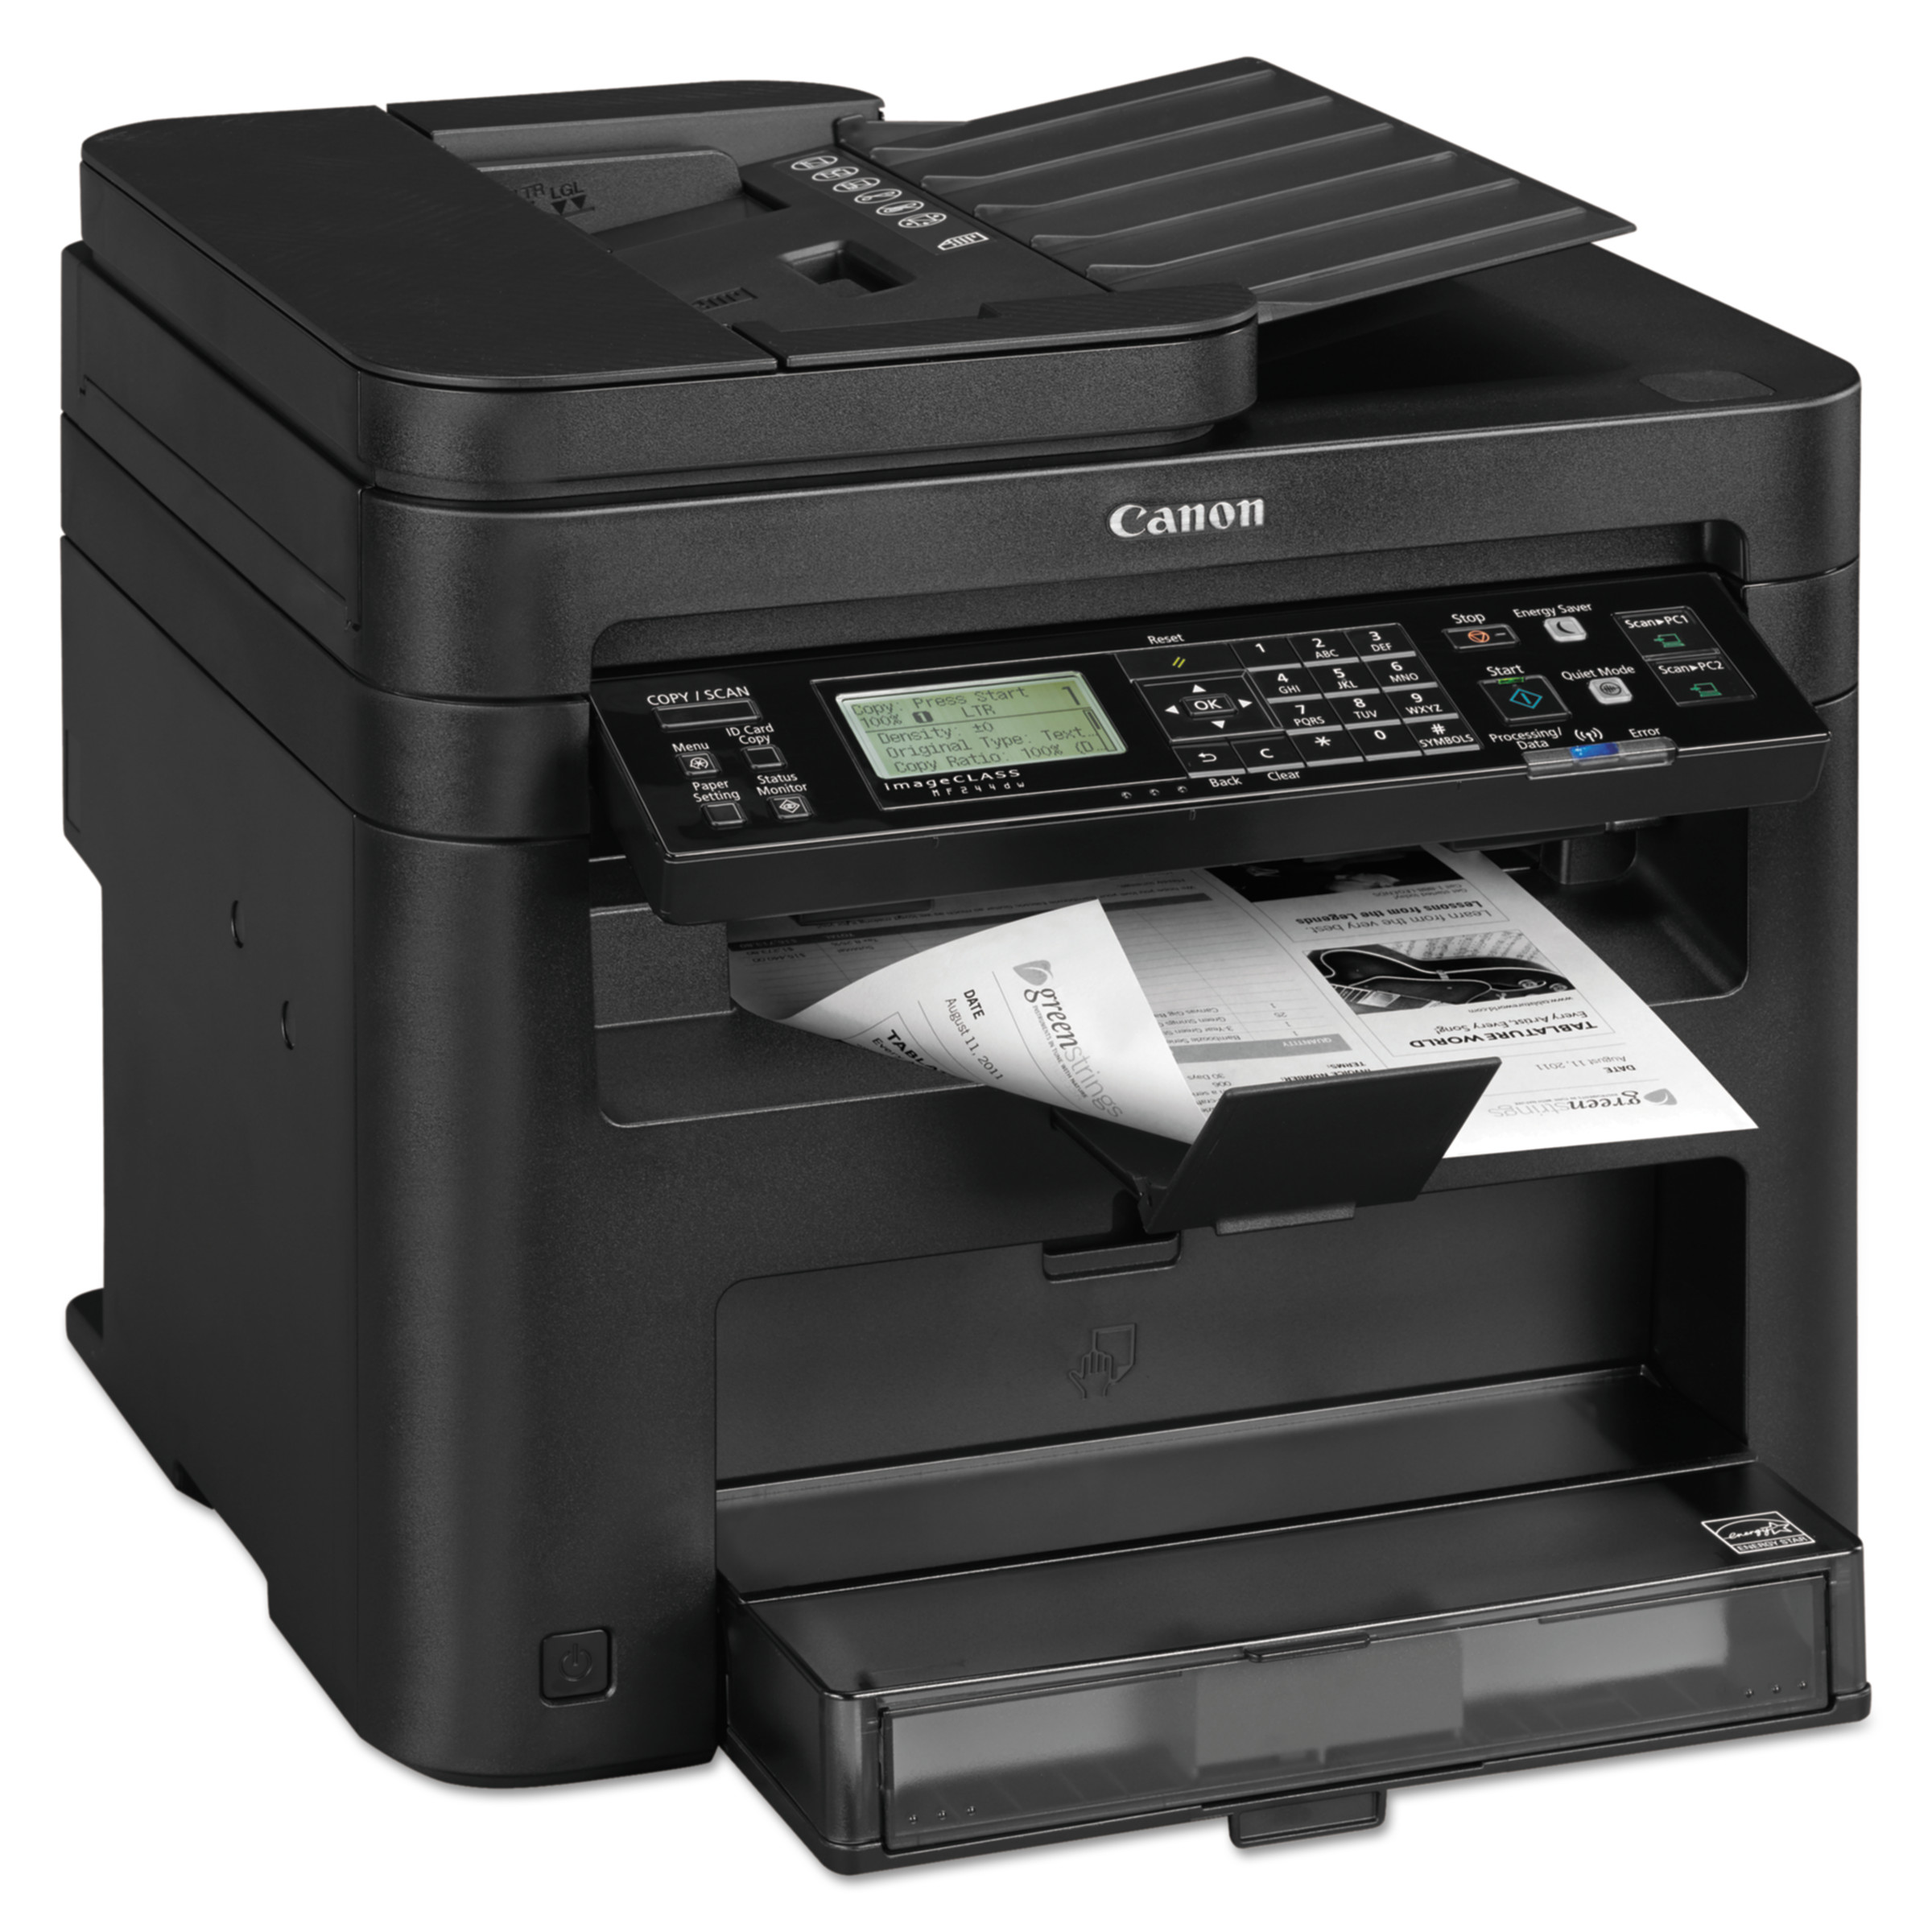 Canon imageCLASS MF244dw Wireless Multifunction Duplex Laser, Print, Scan, Copy